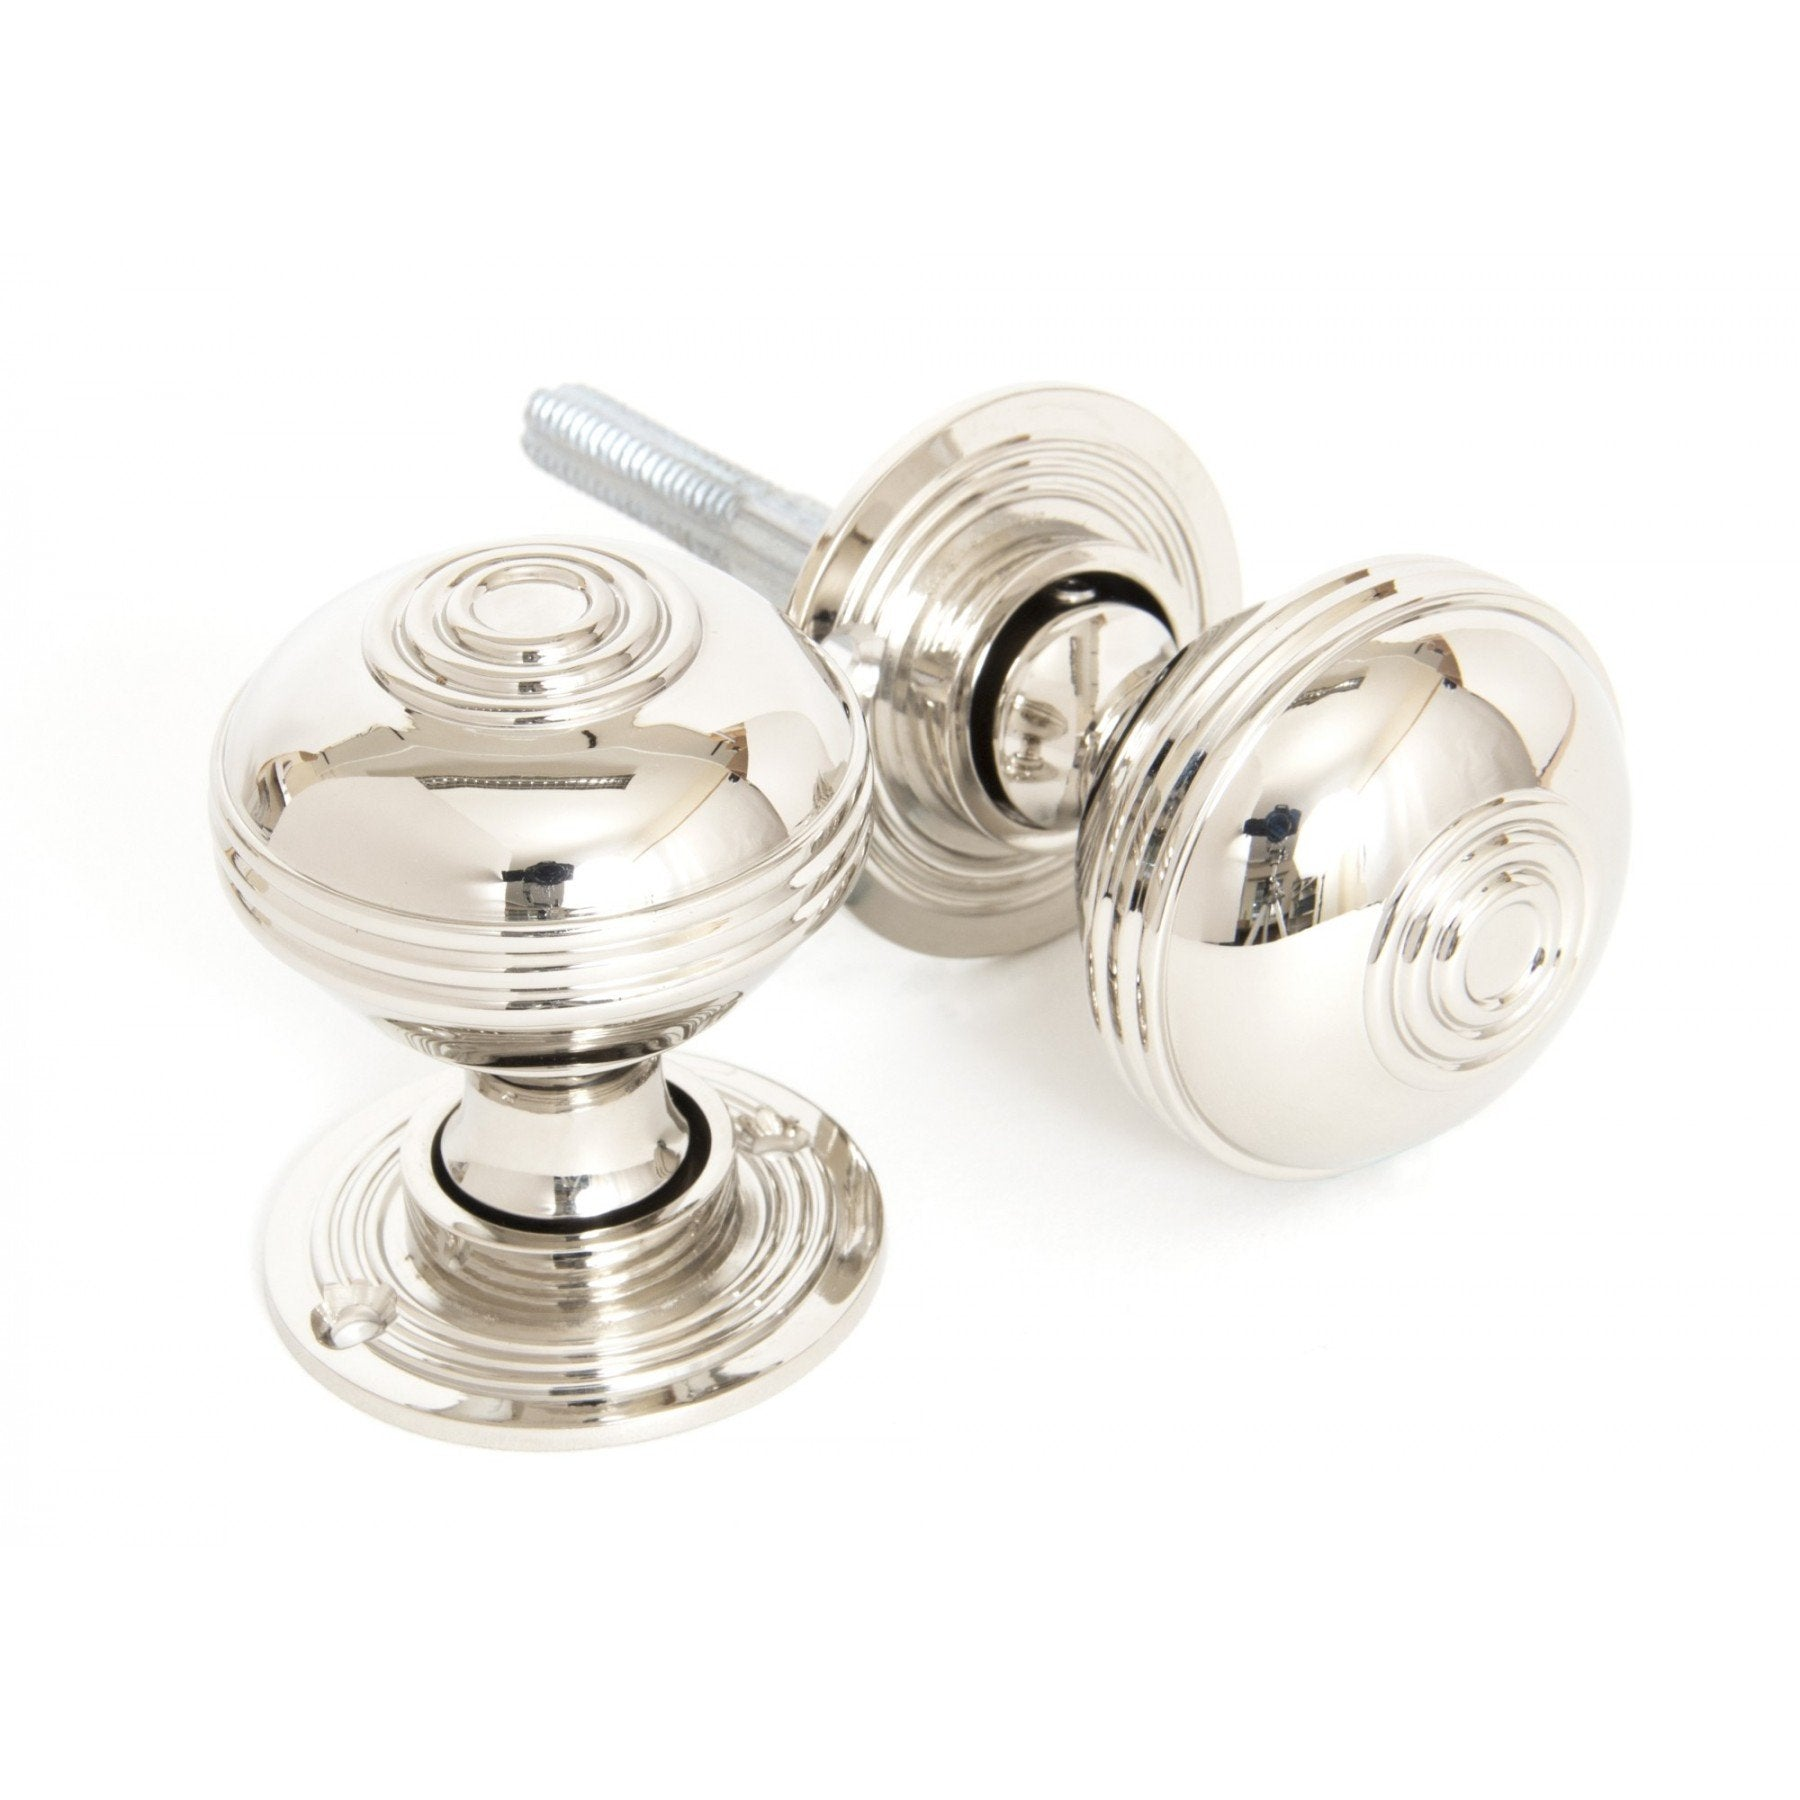 From the Anvil Polished Nickel Prestbury Mortice/Rim Knob Set - 50mm